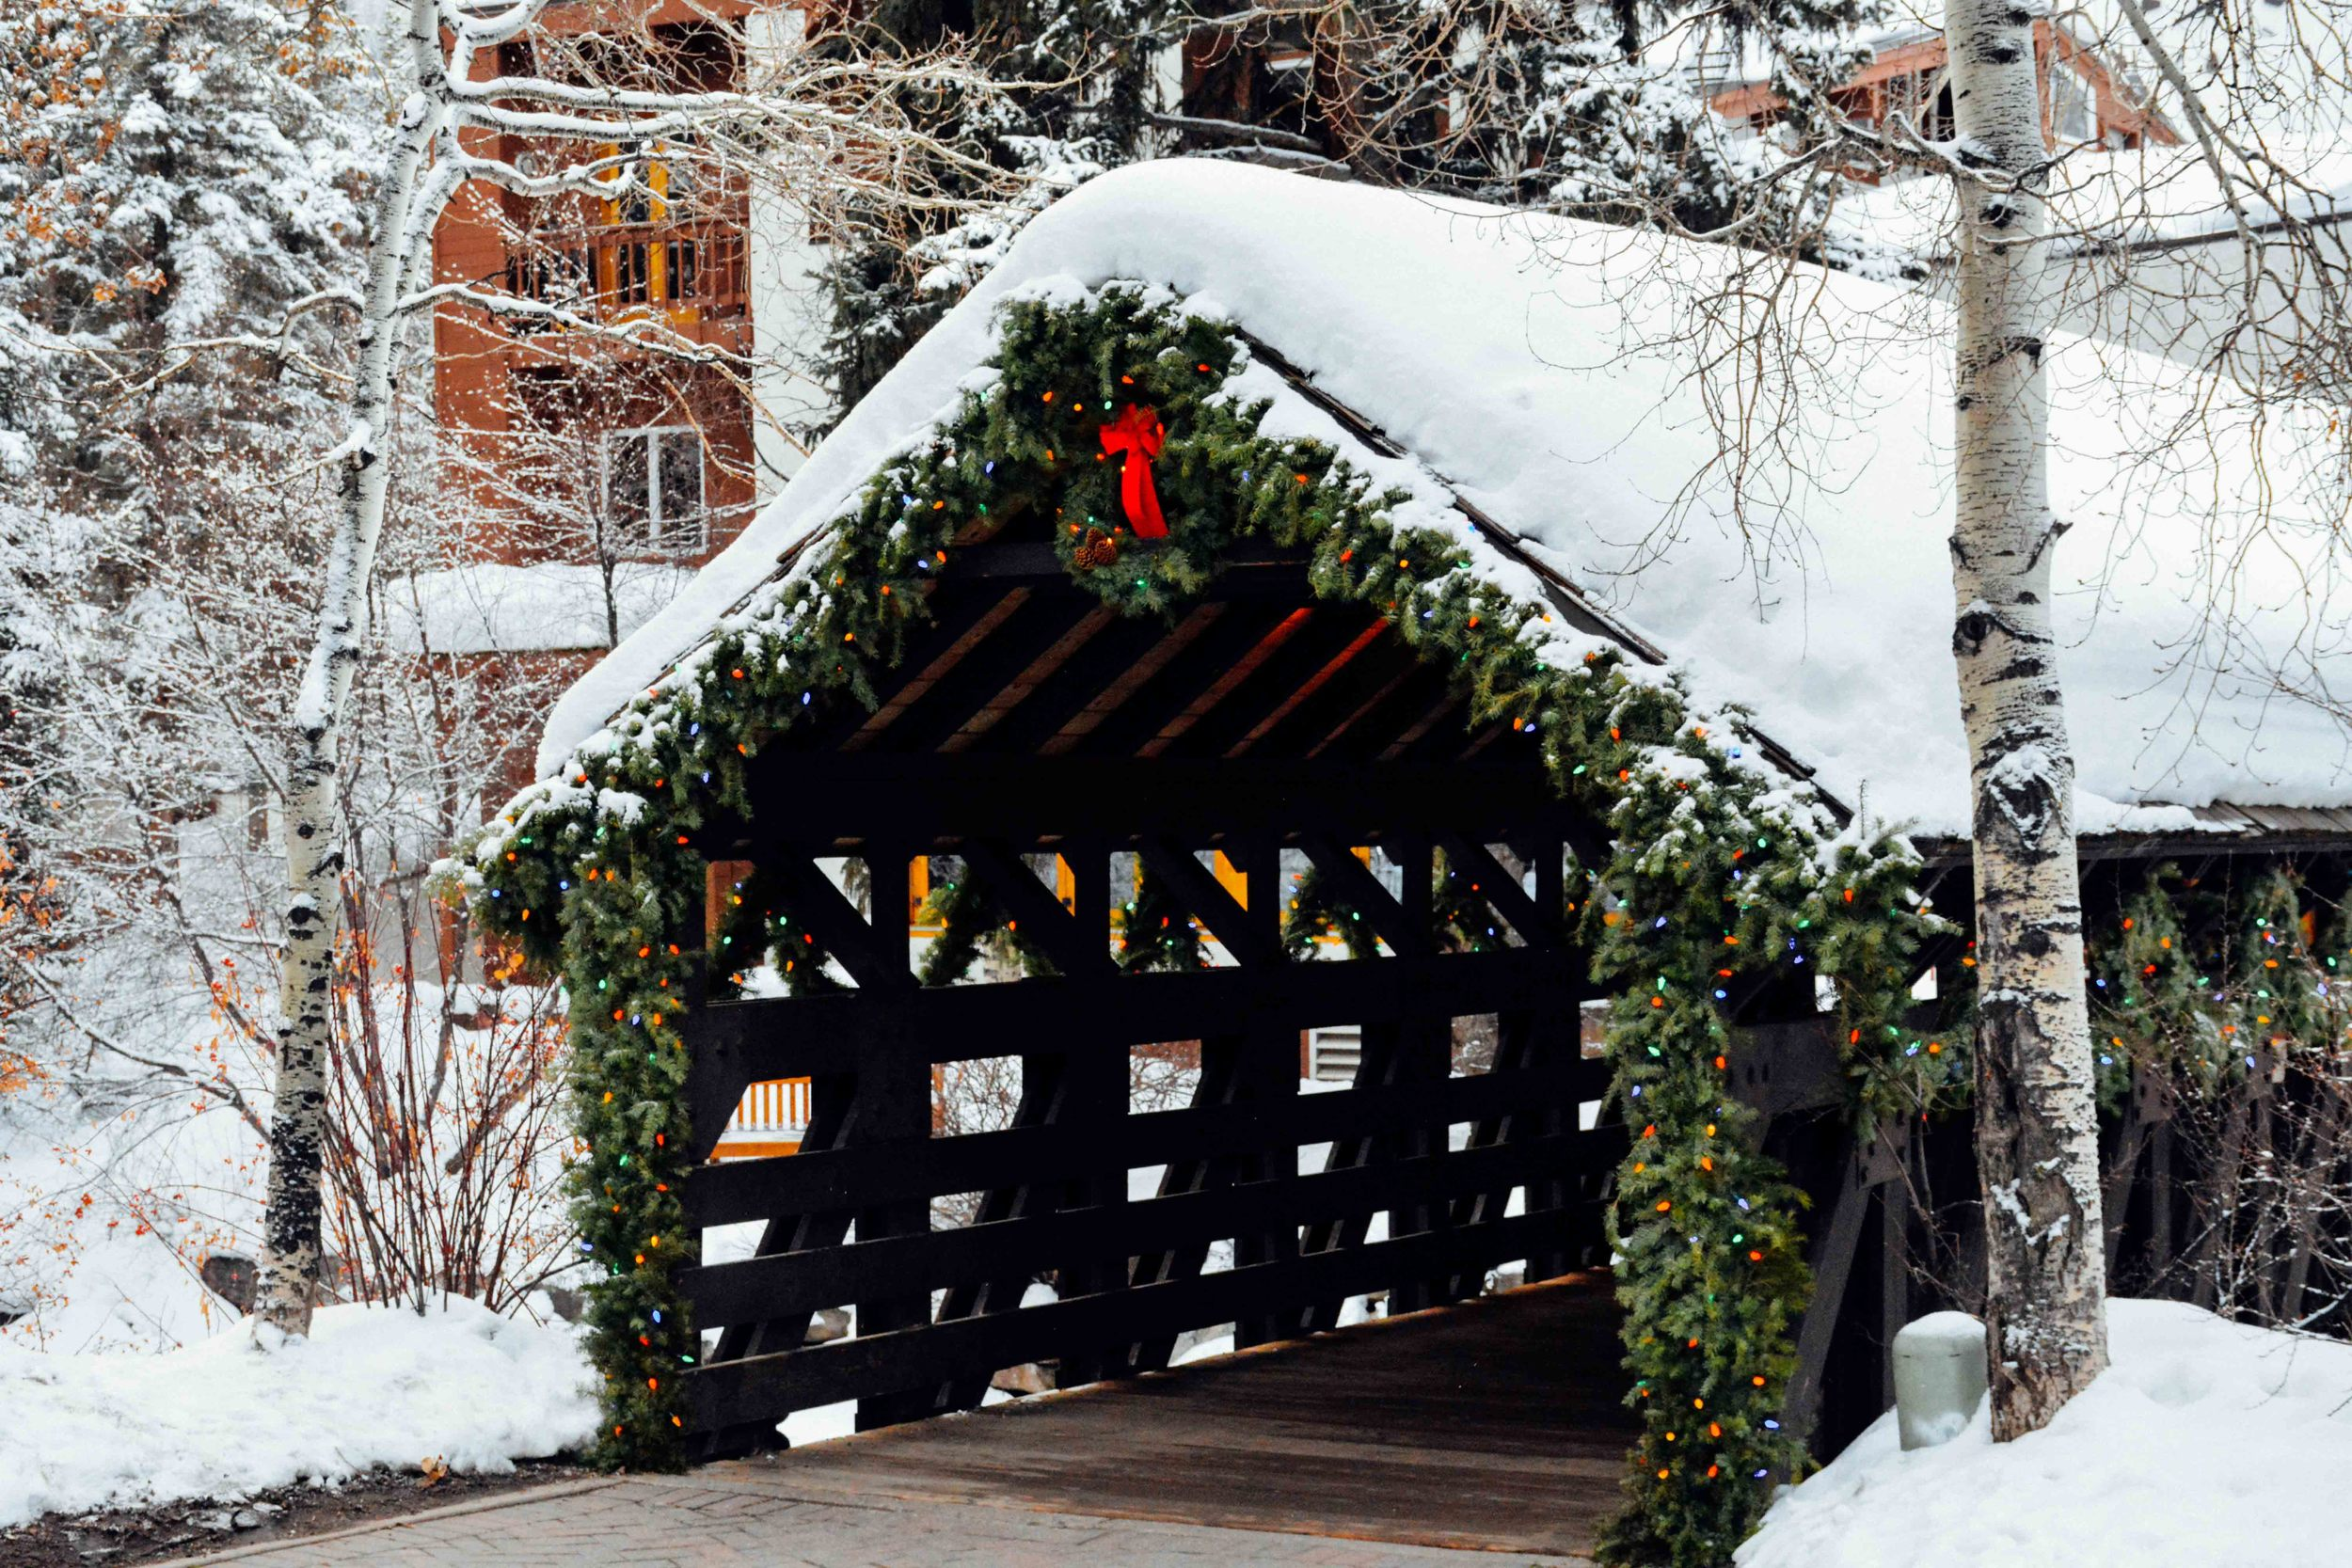 Covered Bridge in Vail